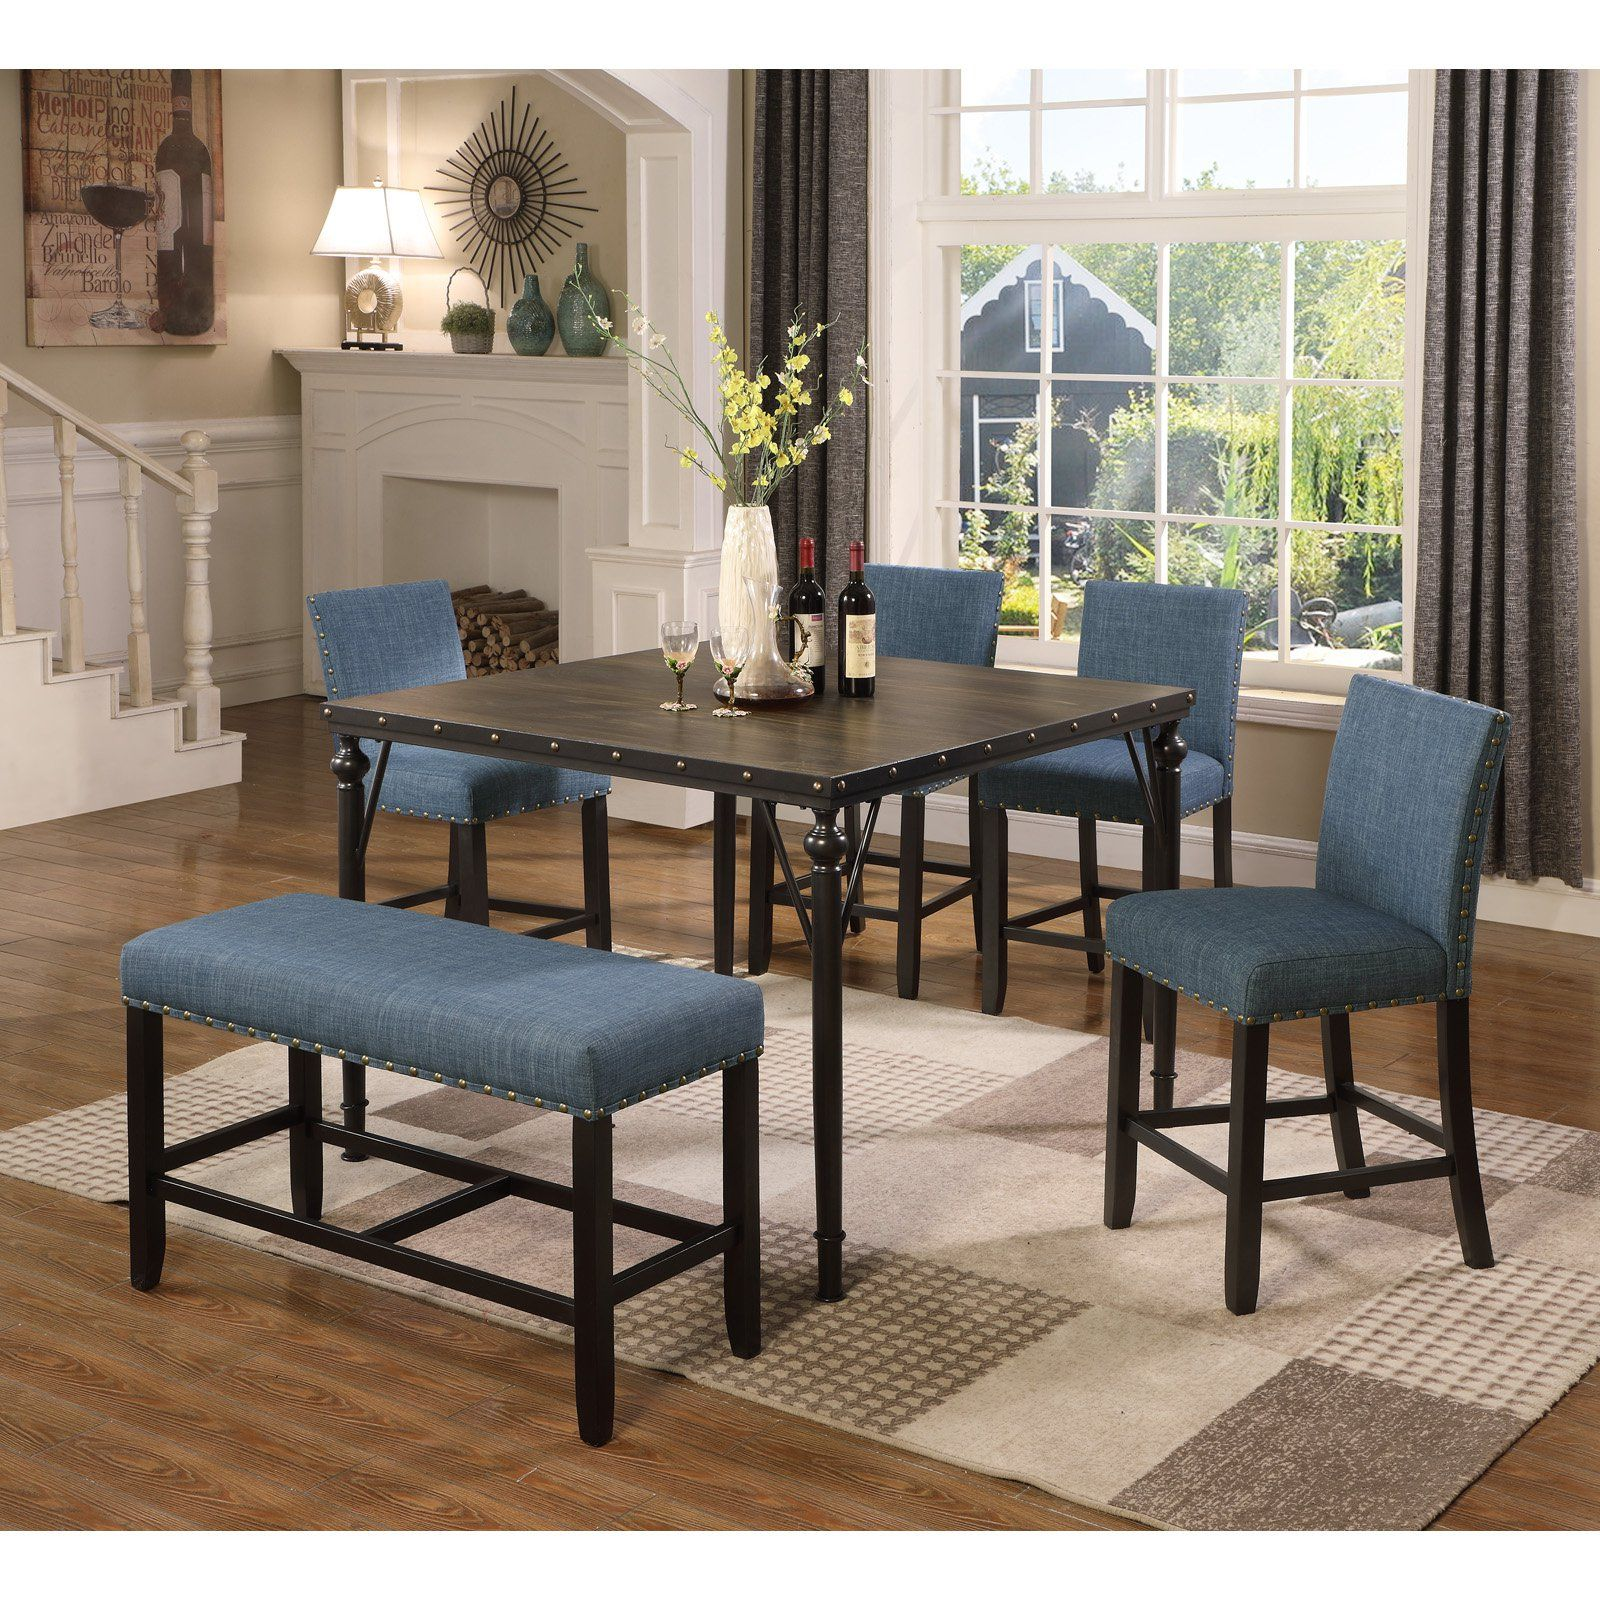 Roundhill Furniture Biony 6 Piece Square Counter Height Dining